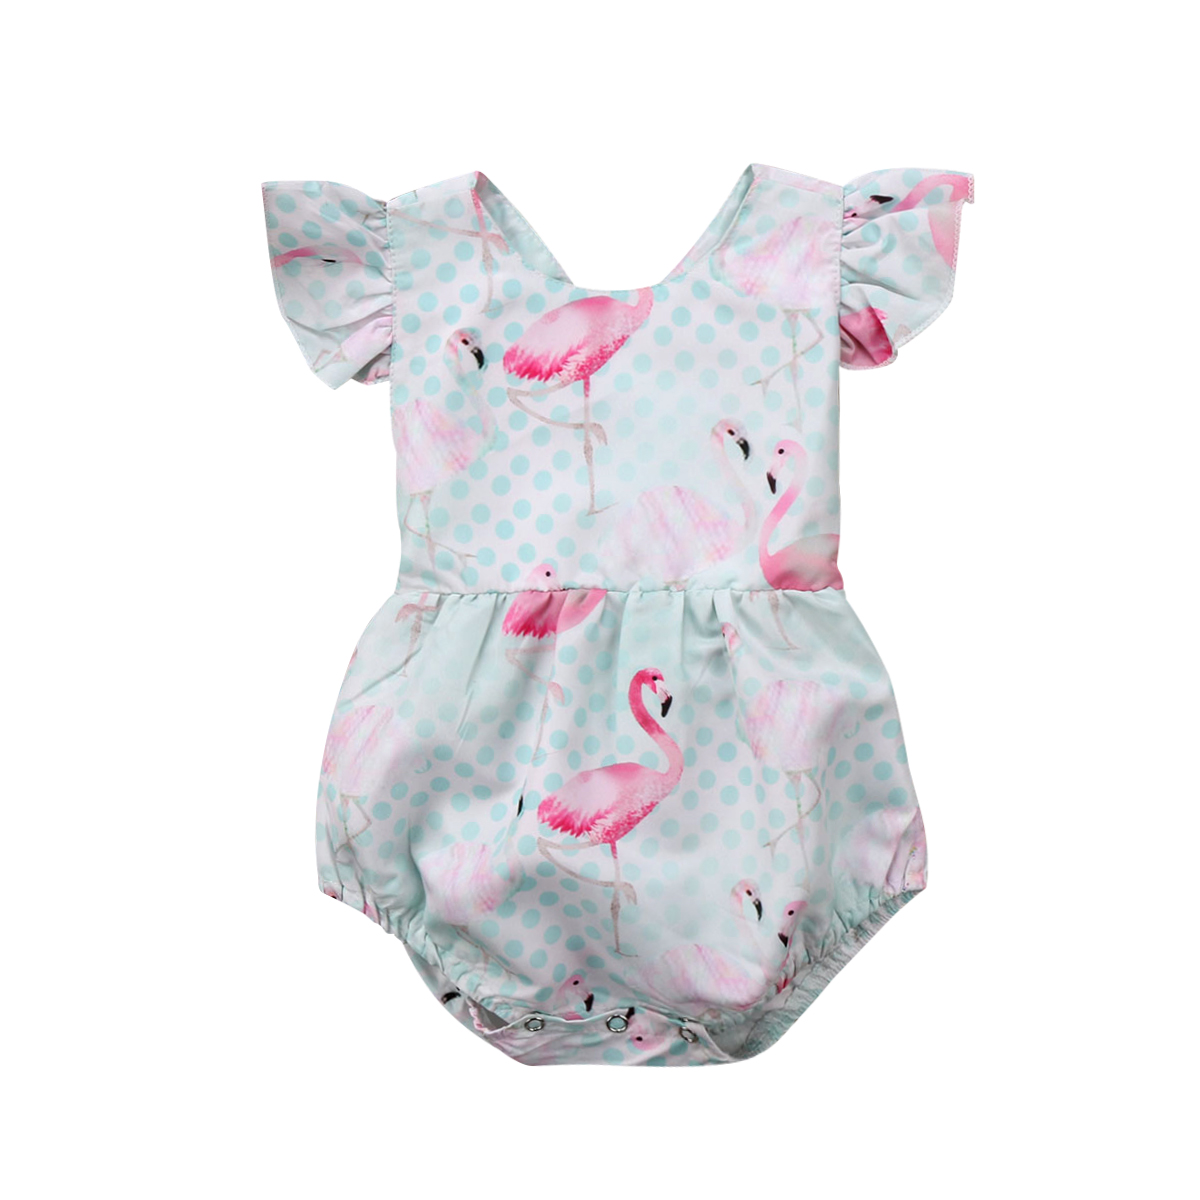 Newborn Infant Kids Baby Girls   Romper   Flamingo Baby   Rompers   Jumpsuit Clothes Outfits